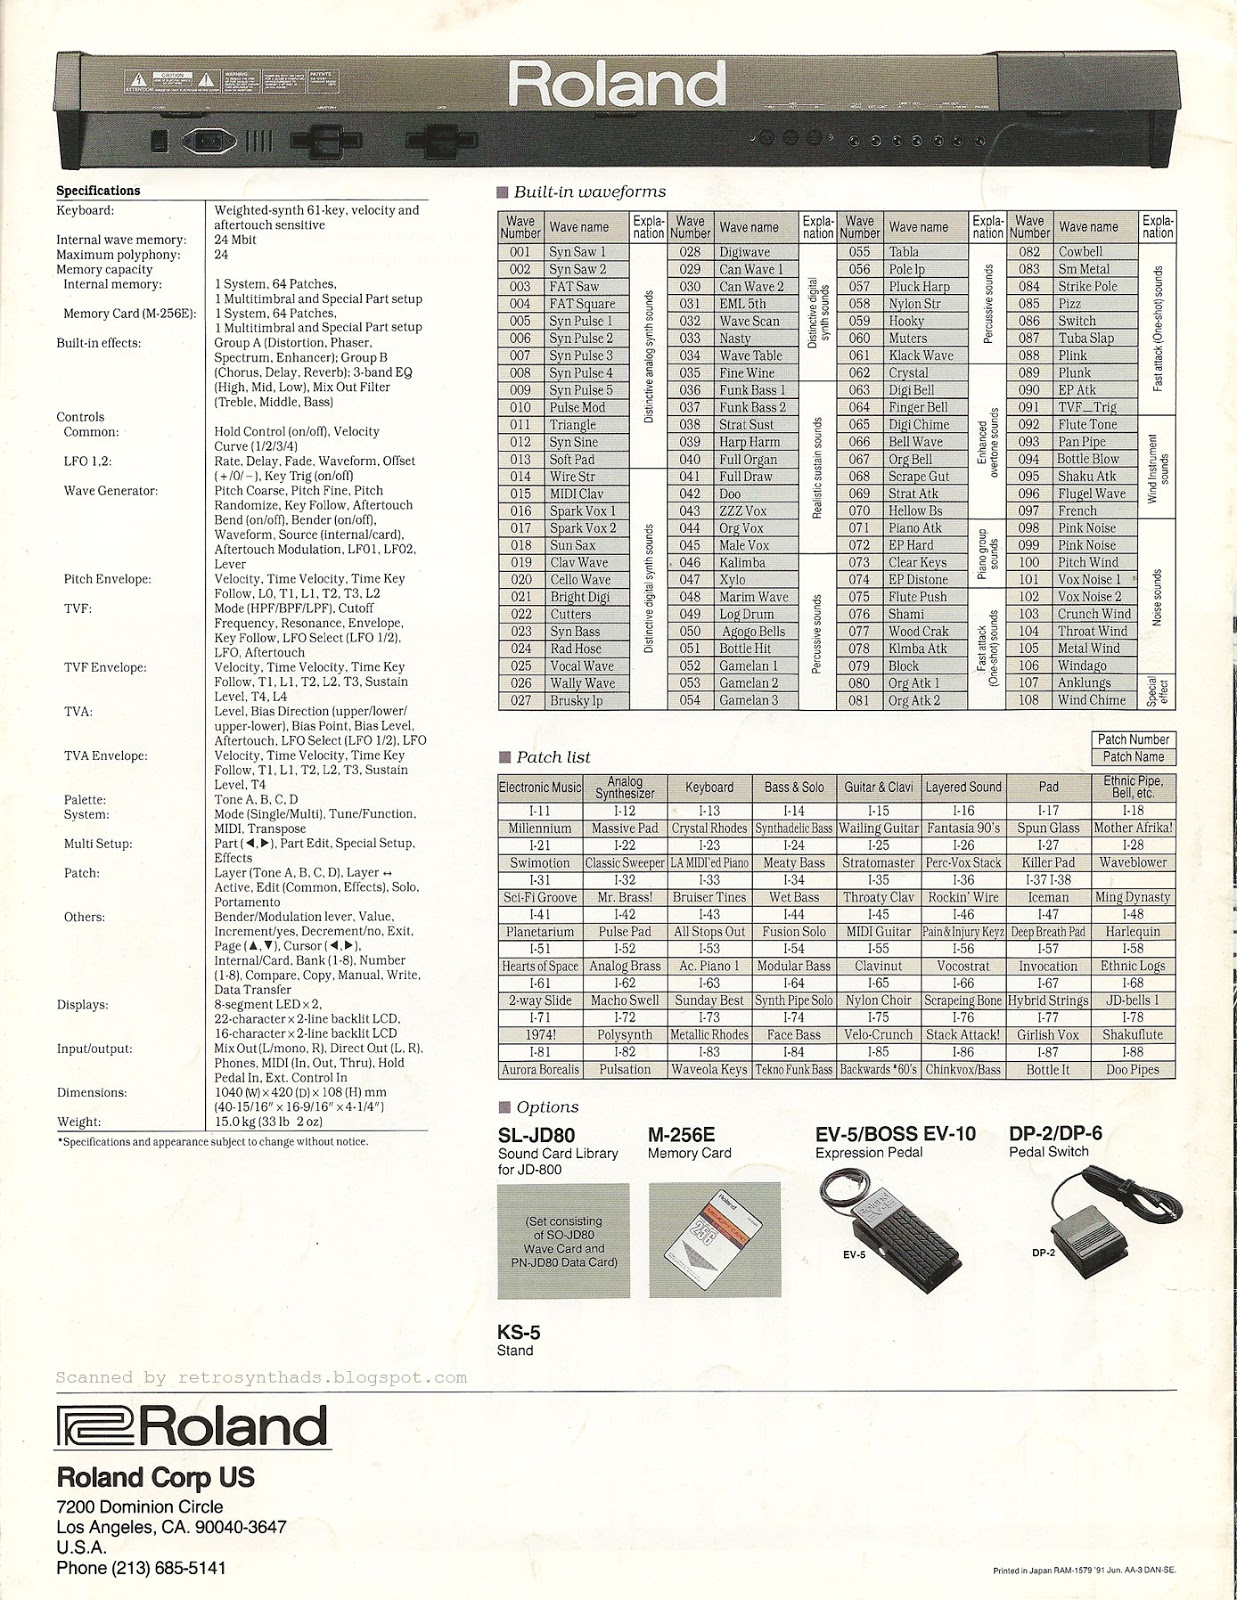 Retro Synth Ads 2013 This Is The Wiring Schematic For Roland Ev5 Expression Footpedal Jd 800 What Does Programmable Really Mean Brochure 1991